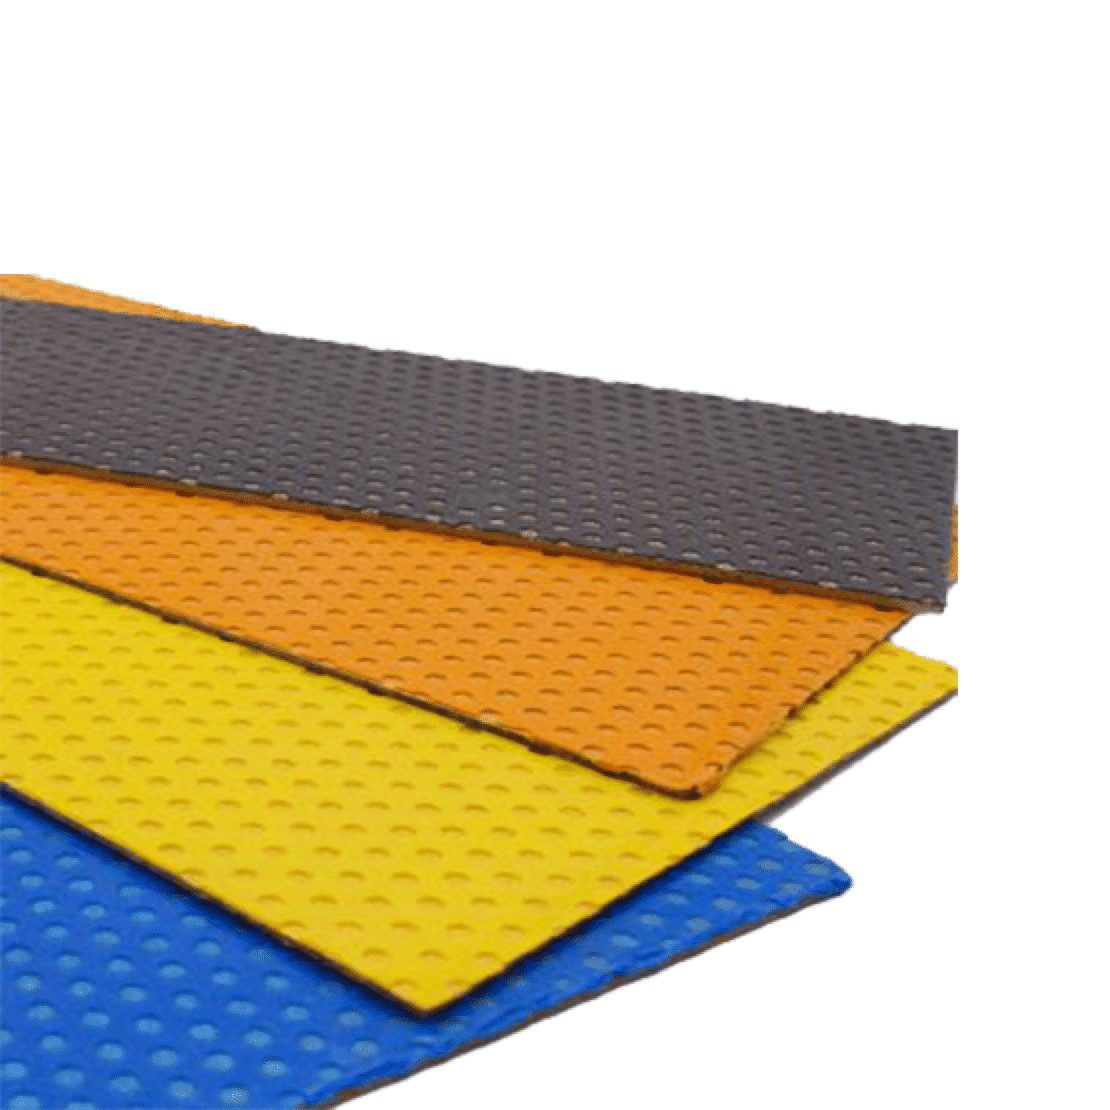 Multilayer material type DX in plate form.